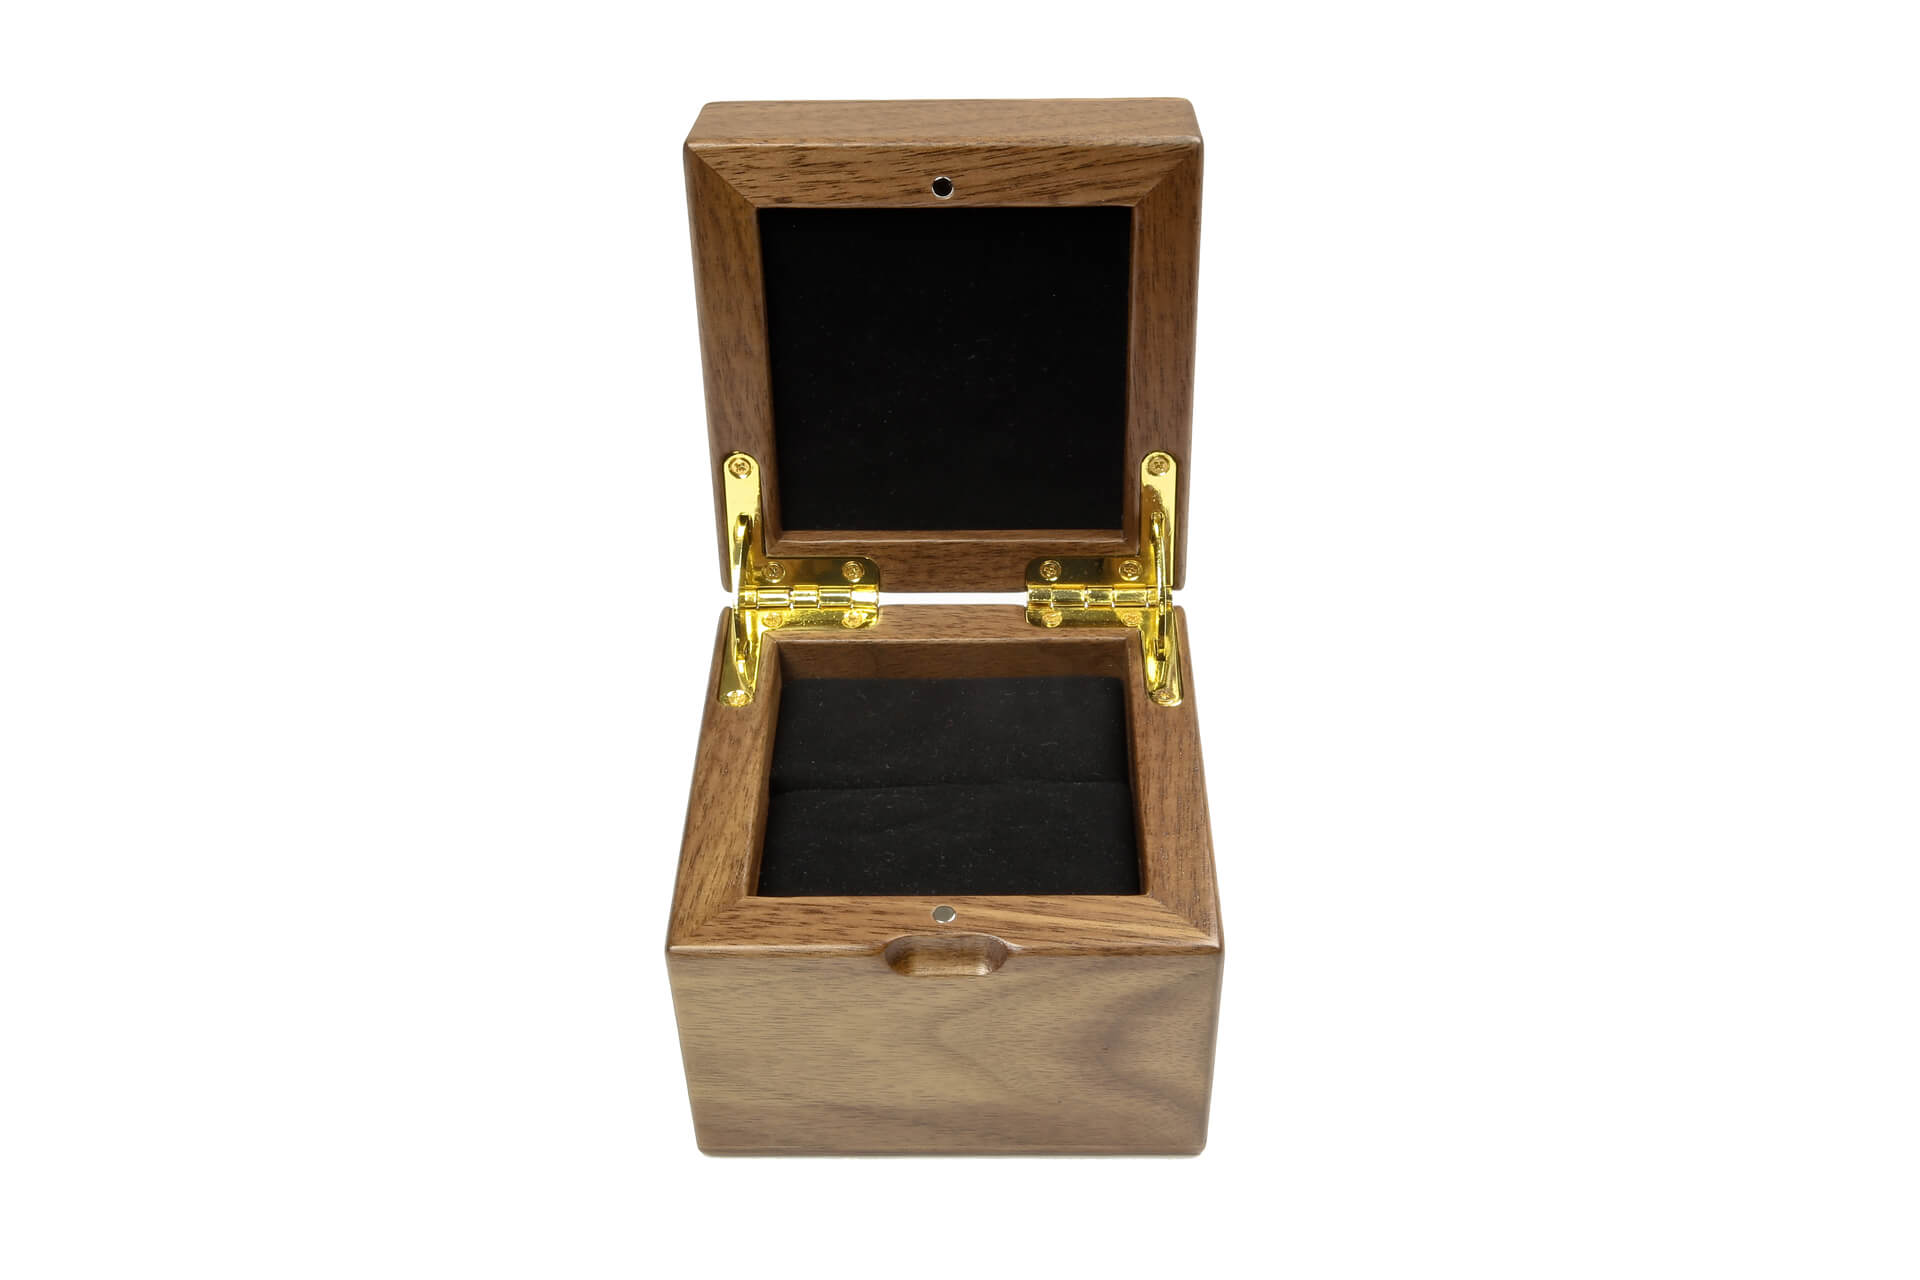 Custom jewelry boxes for retail packaging